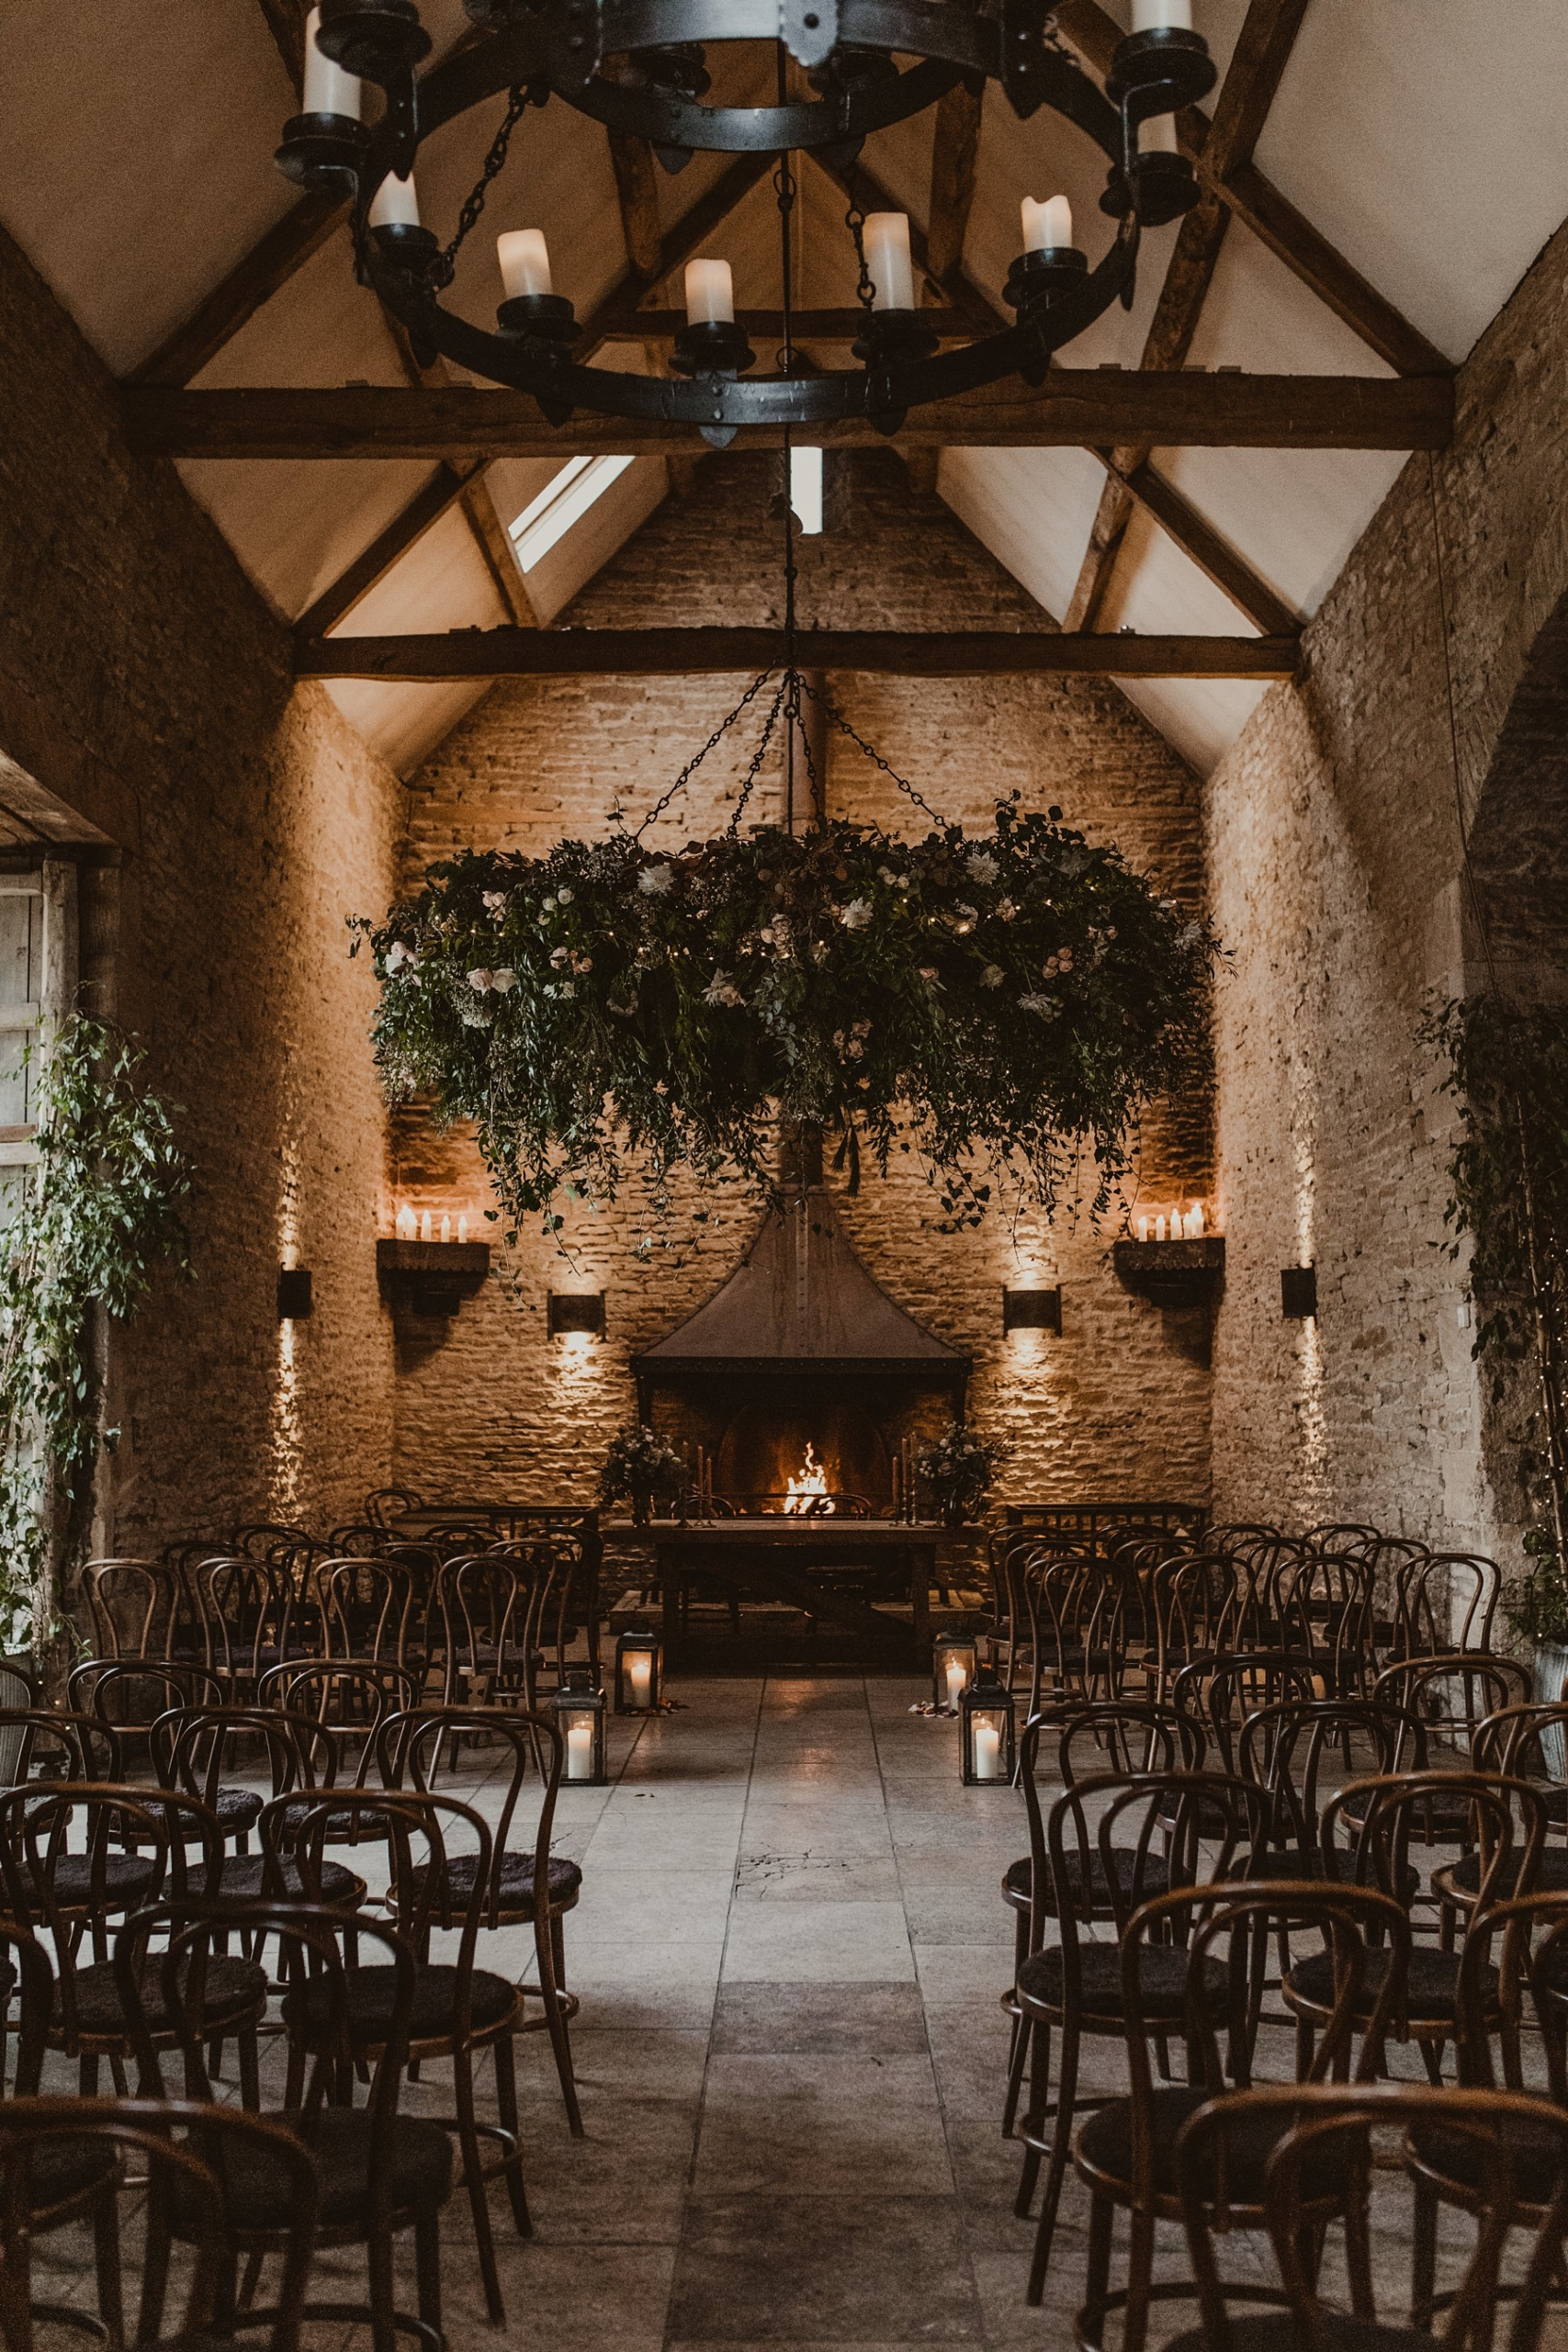 Foliage installation decorating ceremony room with fireplace at Stone Barn